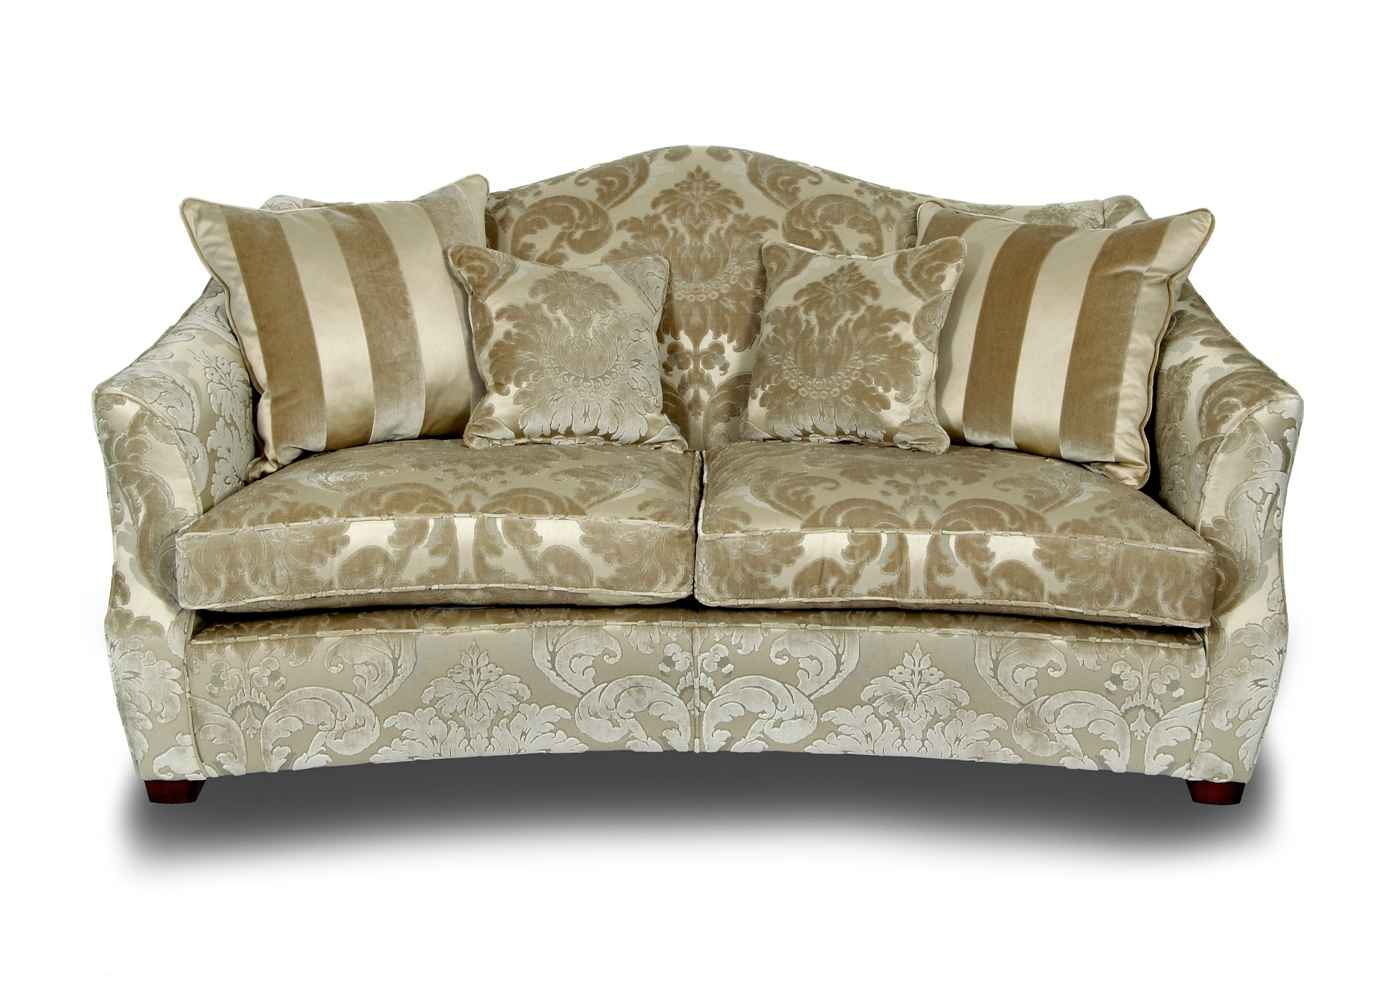 Cheap sofas and loveseats sets Fabric sofas and loveseats